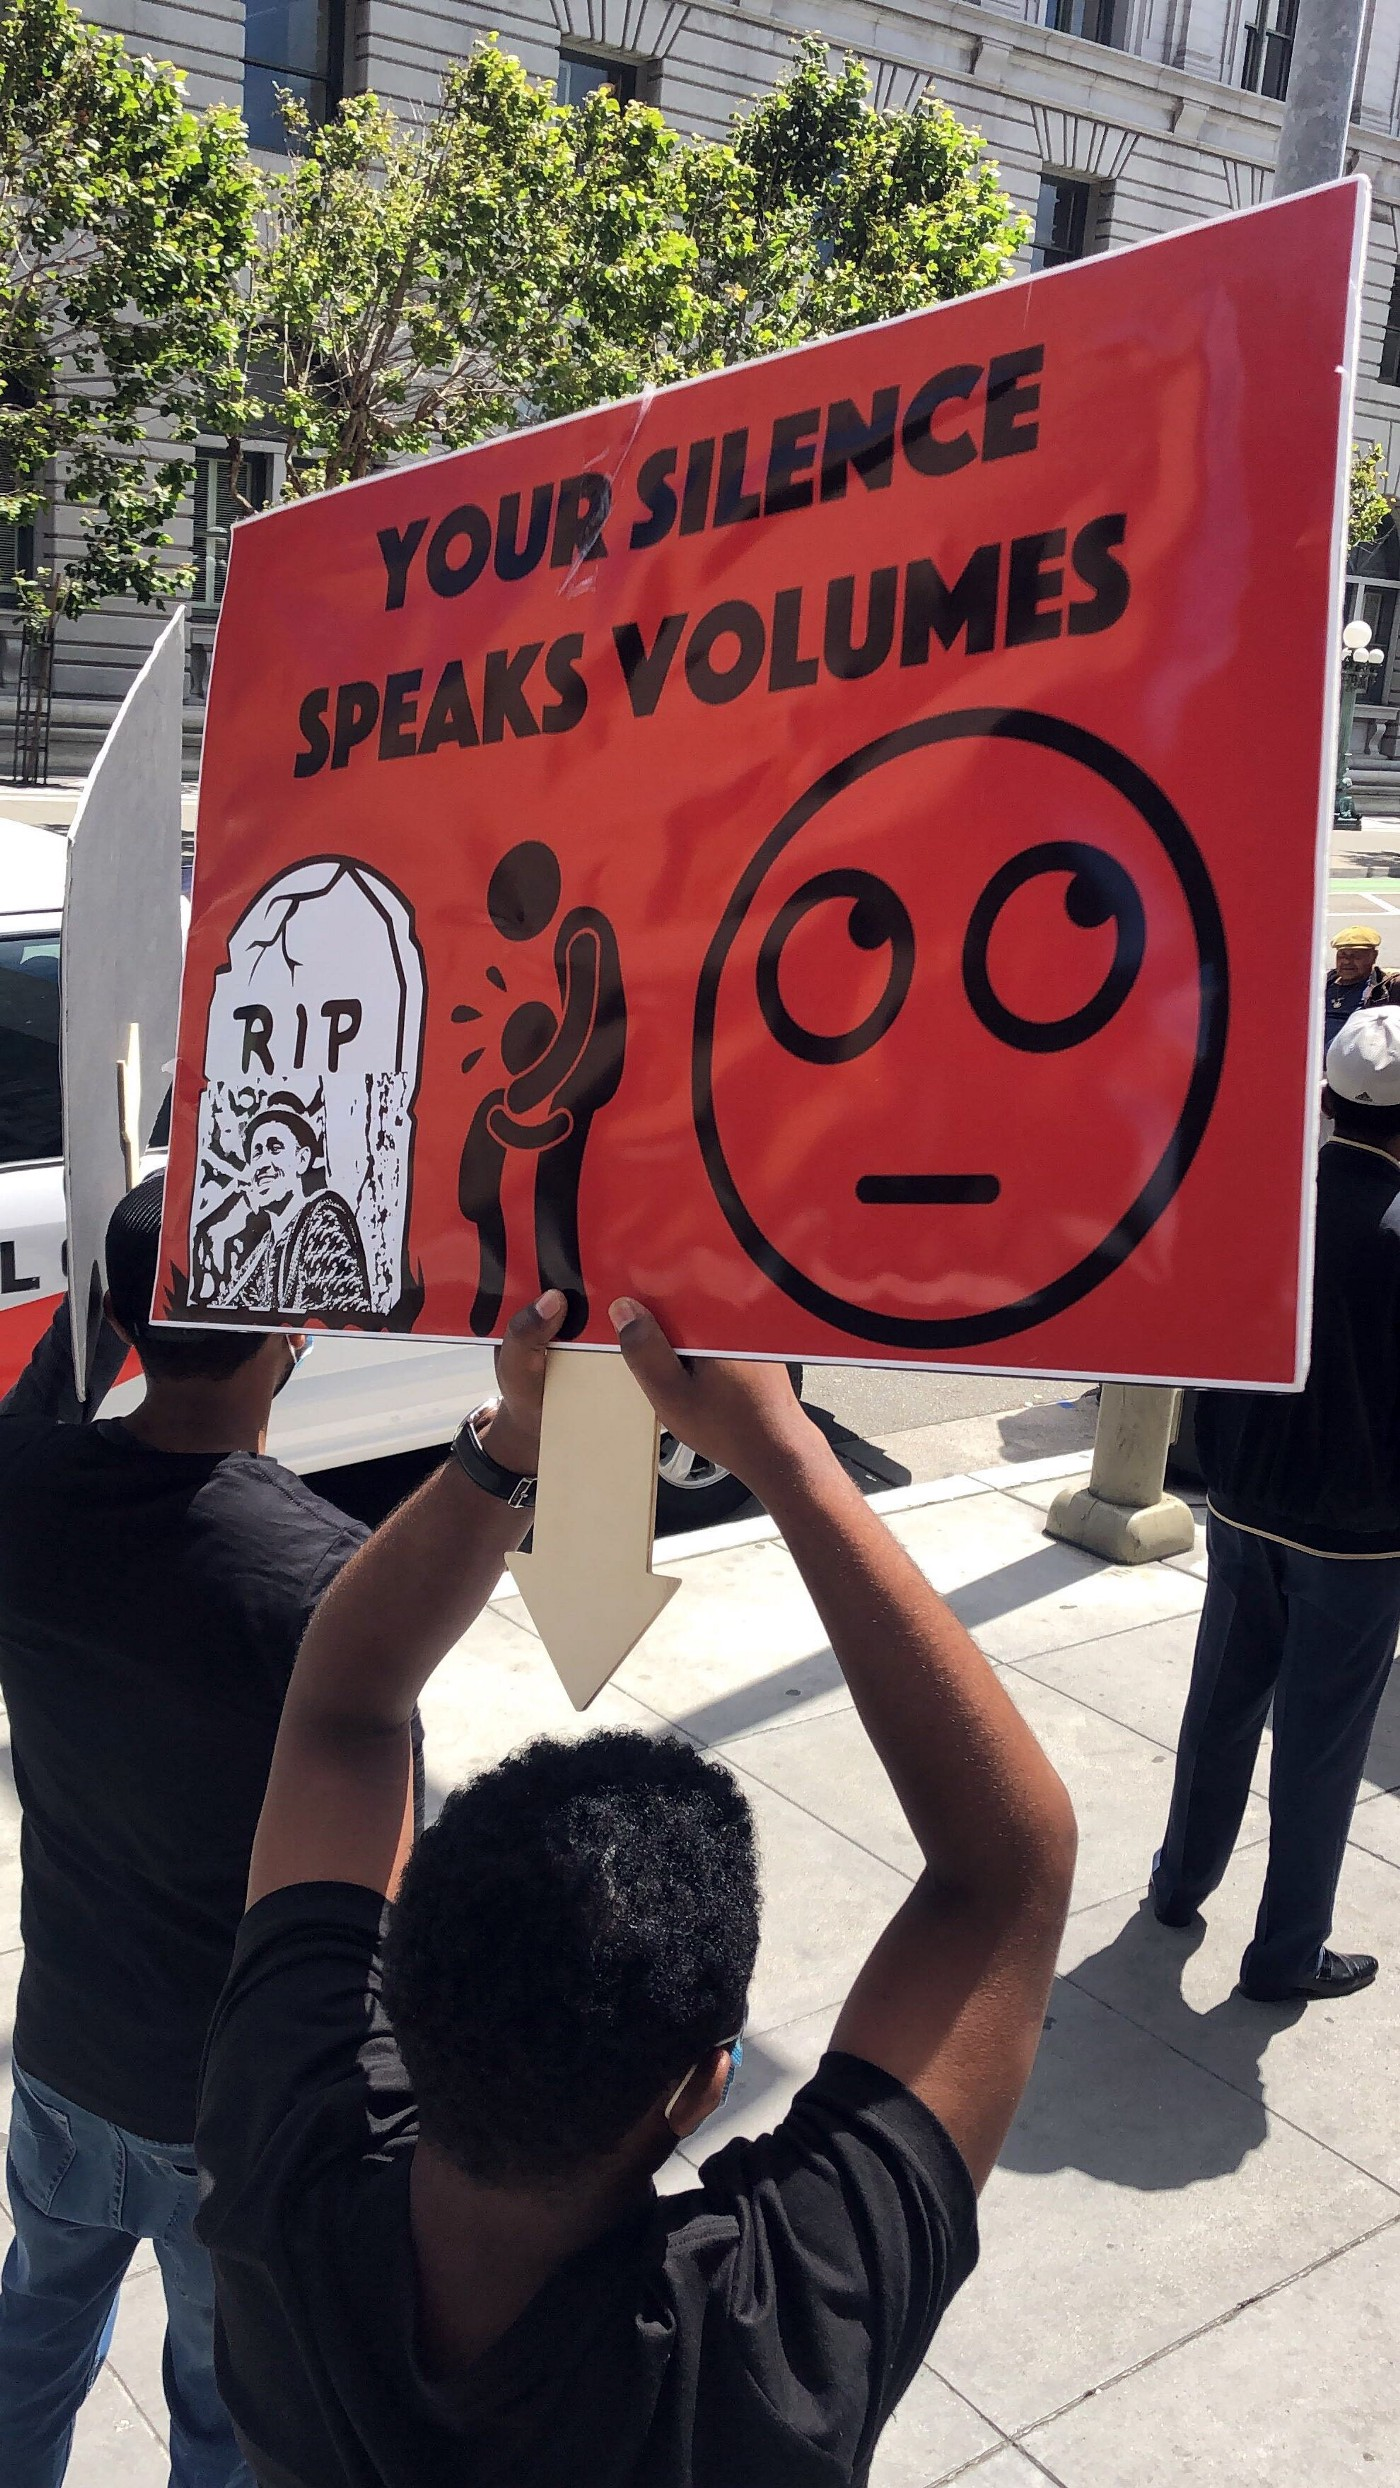 Protesters hold signs in San Francisco in recognition of the worldwide #oromoprotest